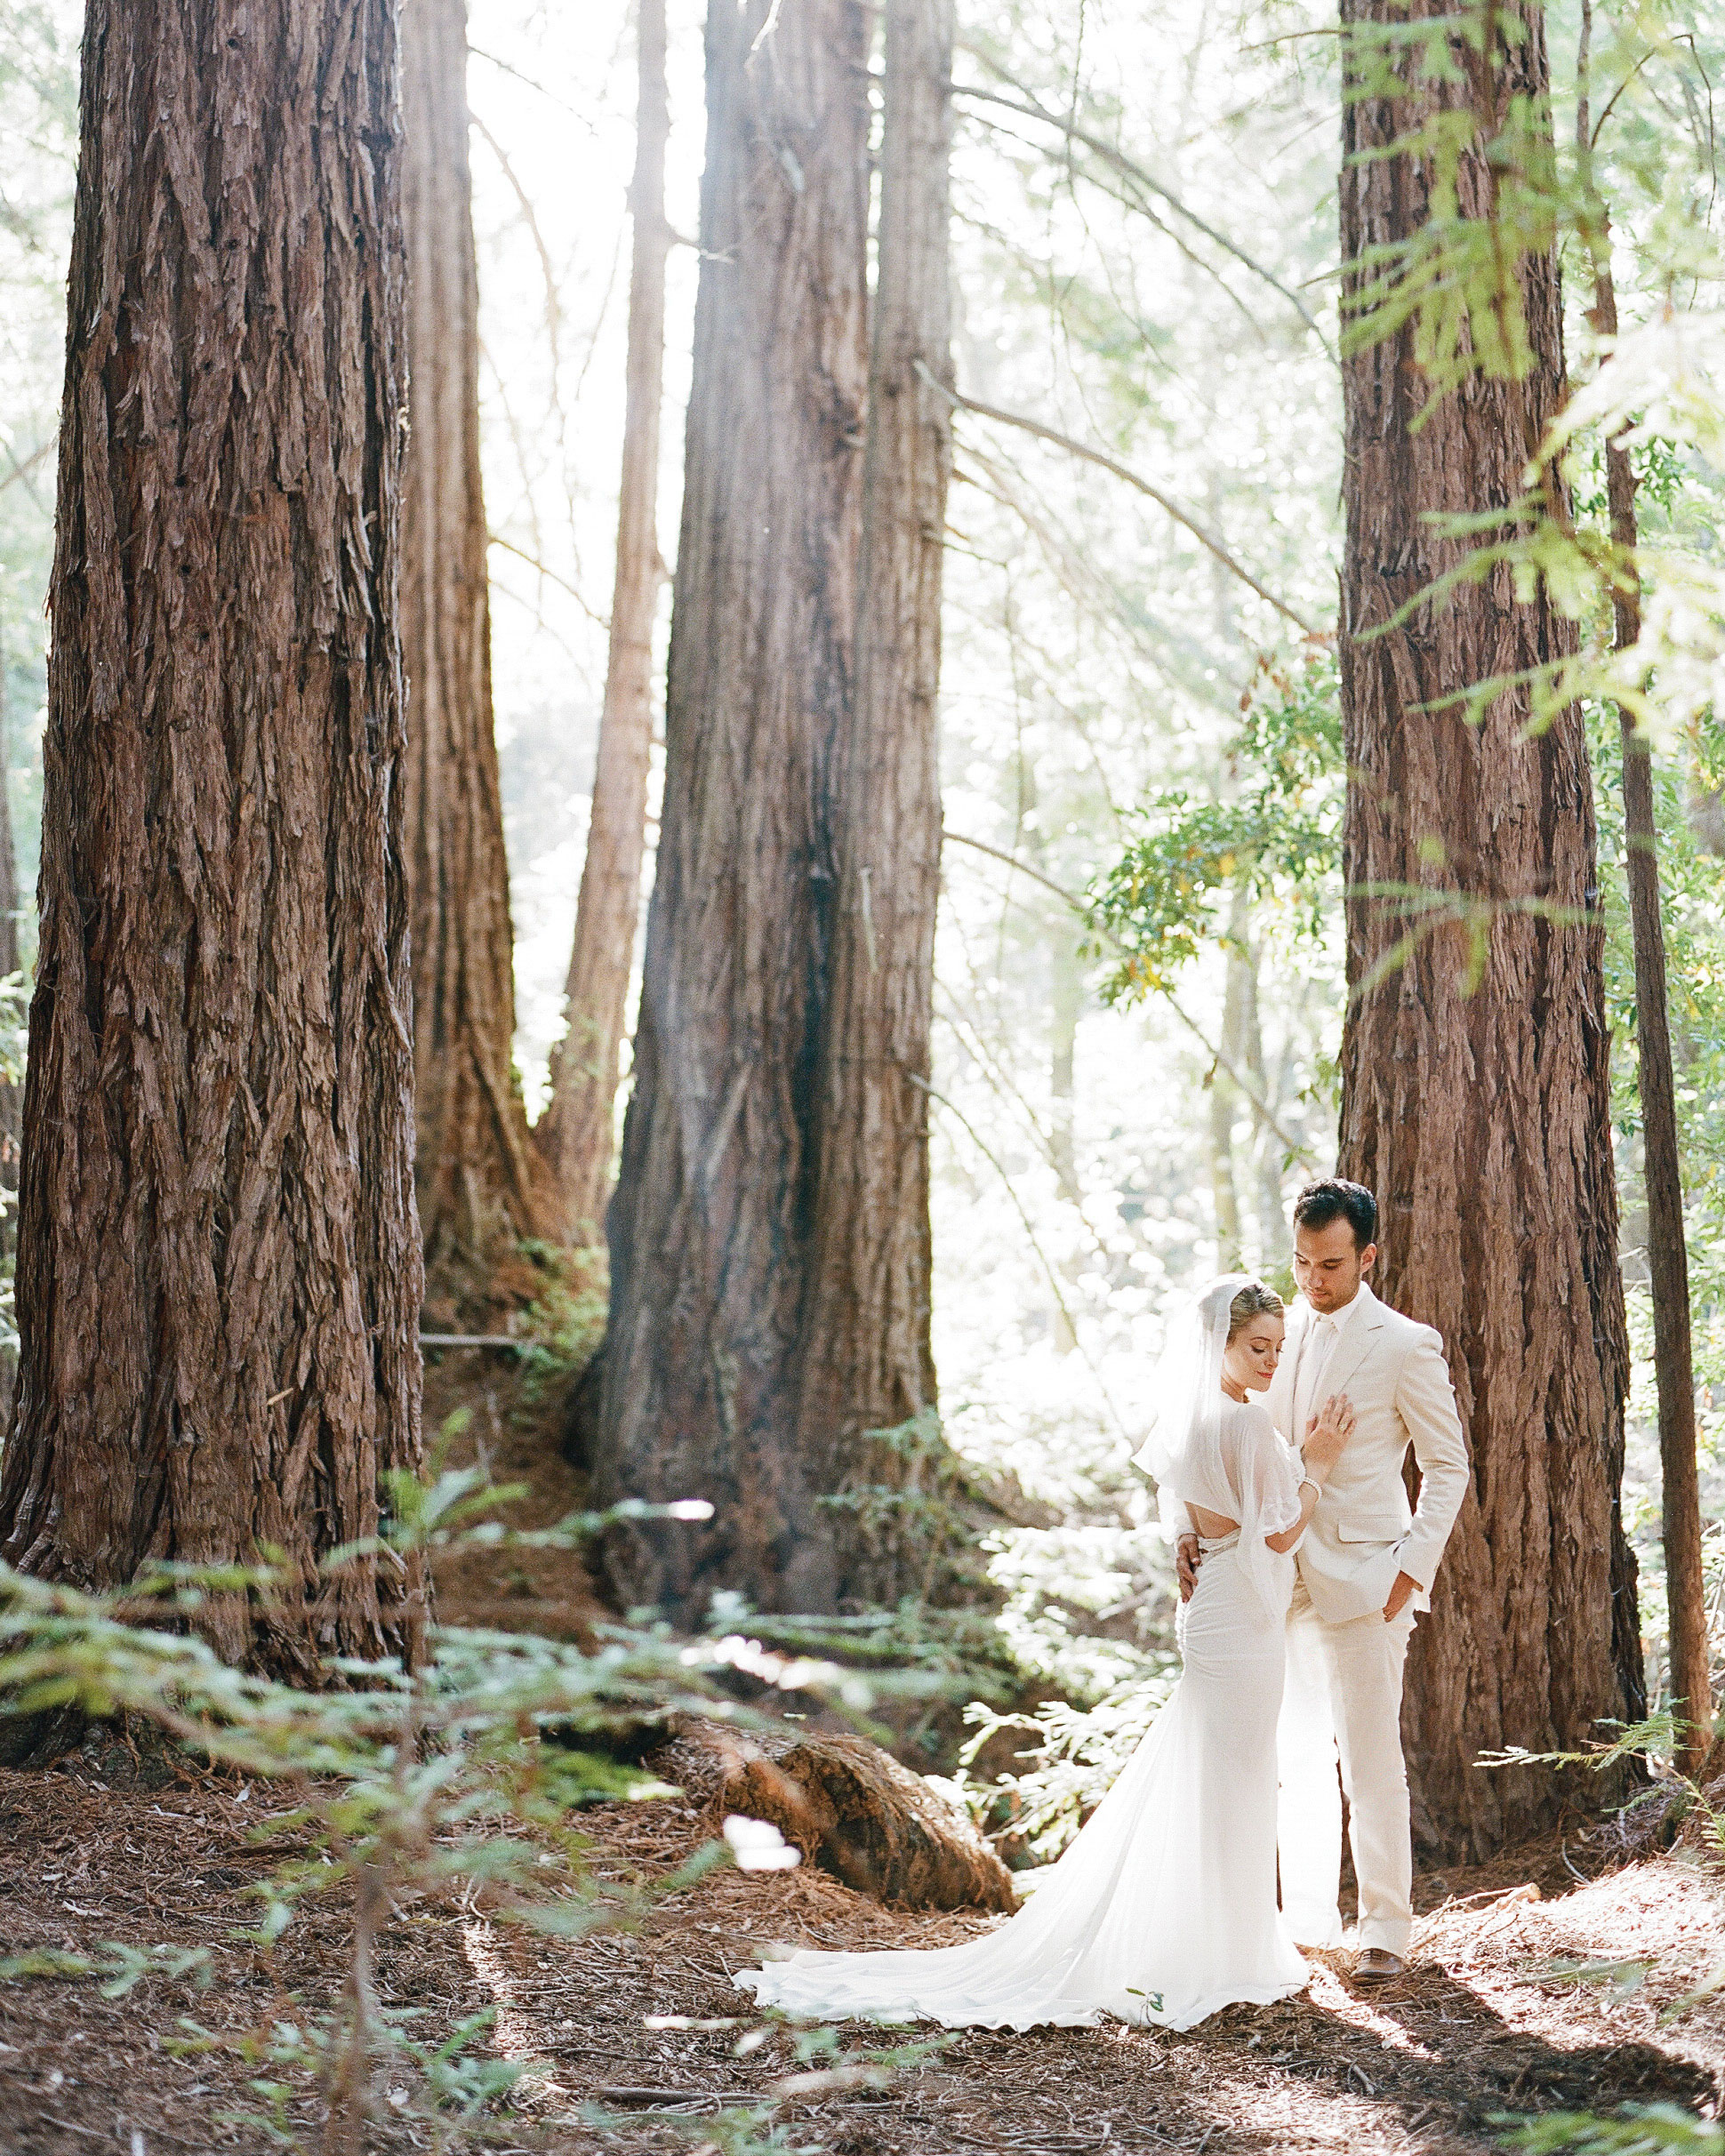 breelayne-hunter-wedding-california-bride-groom-portrait-redwoods-0069-barn-santa-lucia-preserve-s112849.jpg